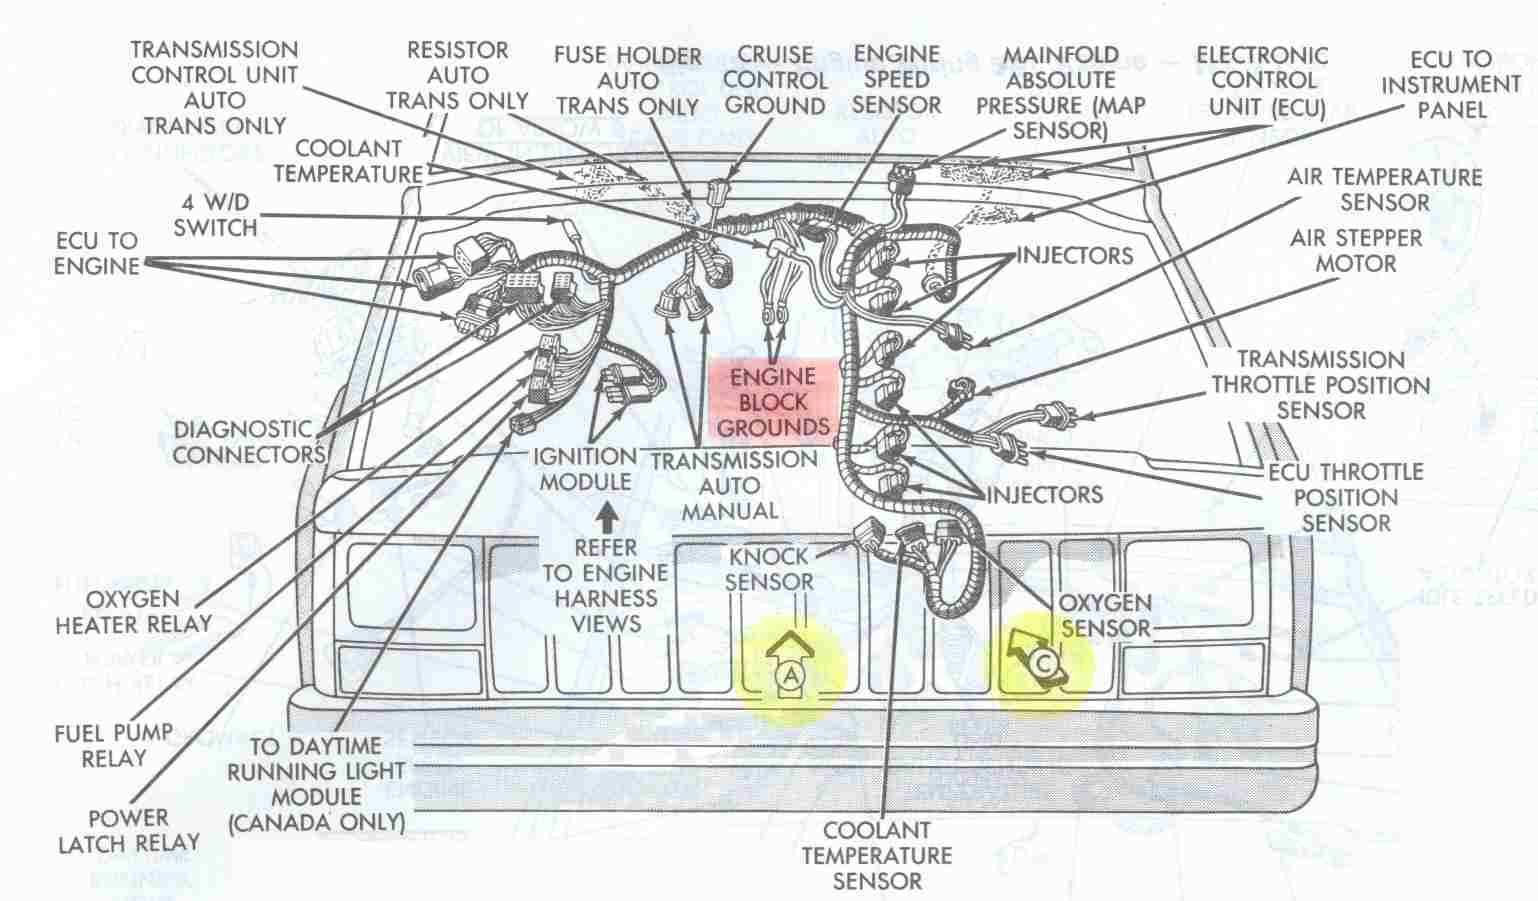 01 jeep cherokee wiring harness schematic diagrams jeep commander vent  diagrams 01 jeep cherokee wiring harness